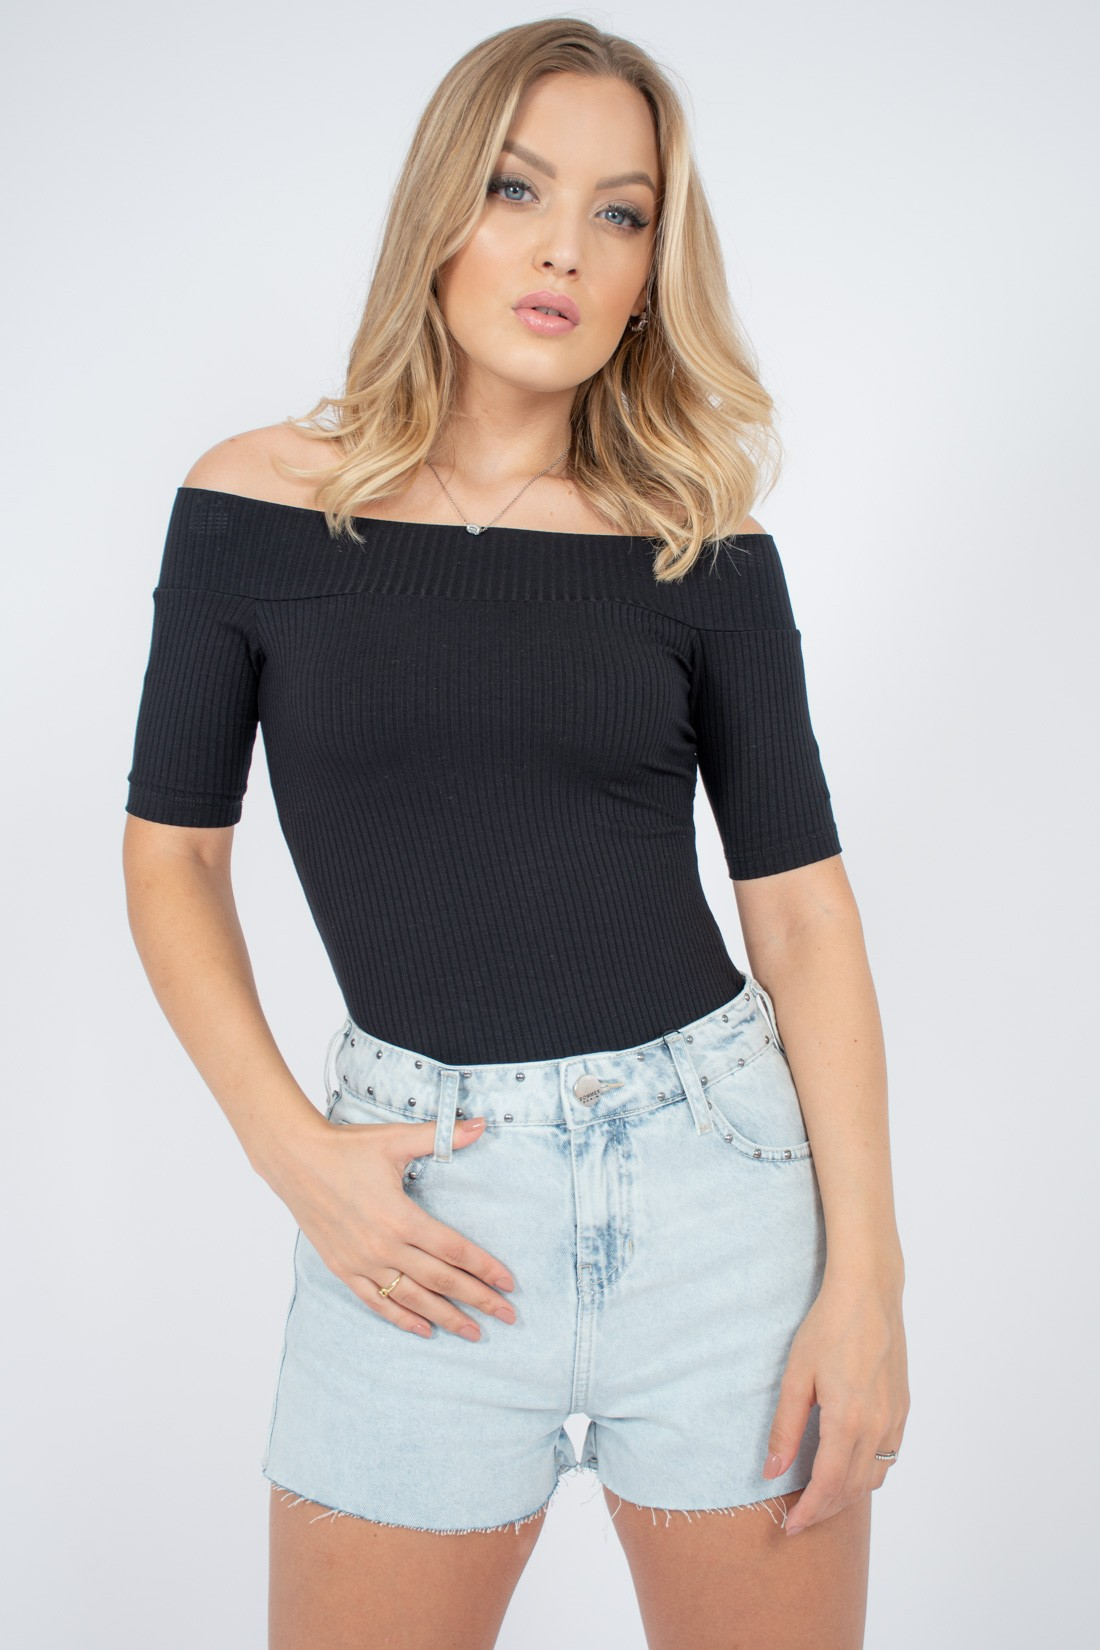 Shorts Jeans Sommer Apliques